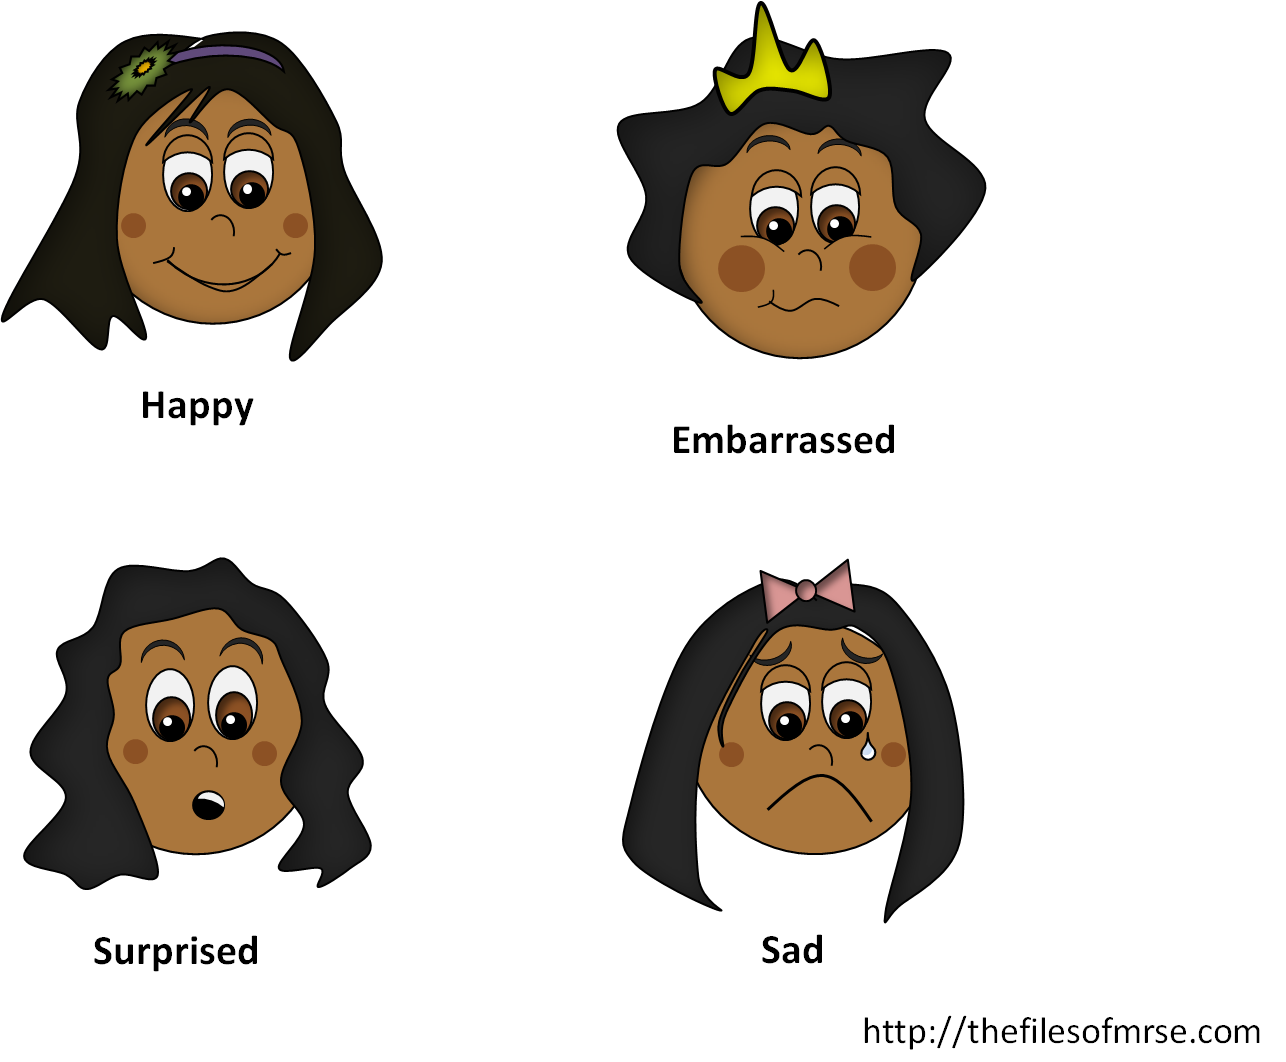 Emotion the files of. Surprise clipart little girl